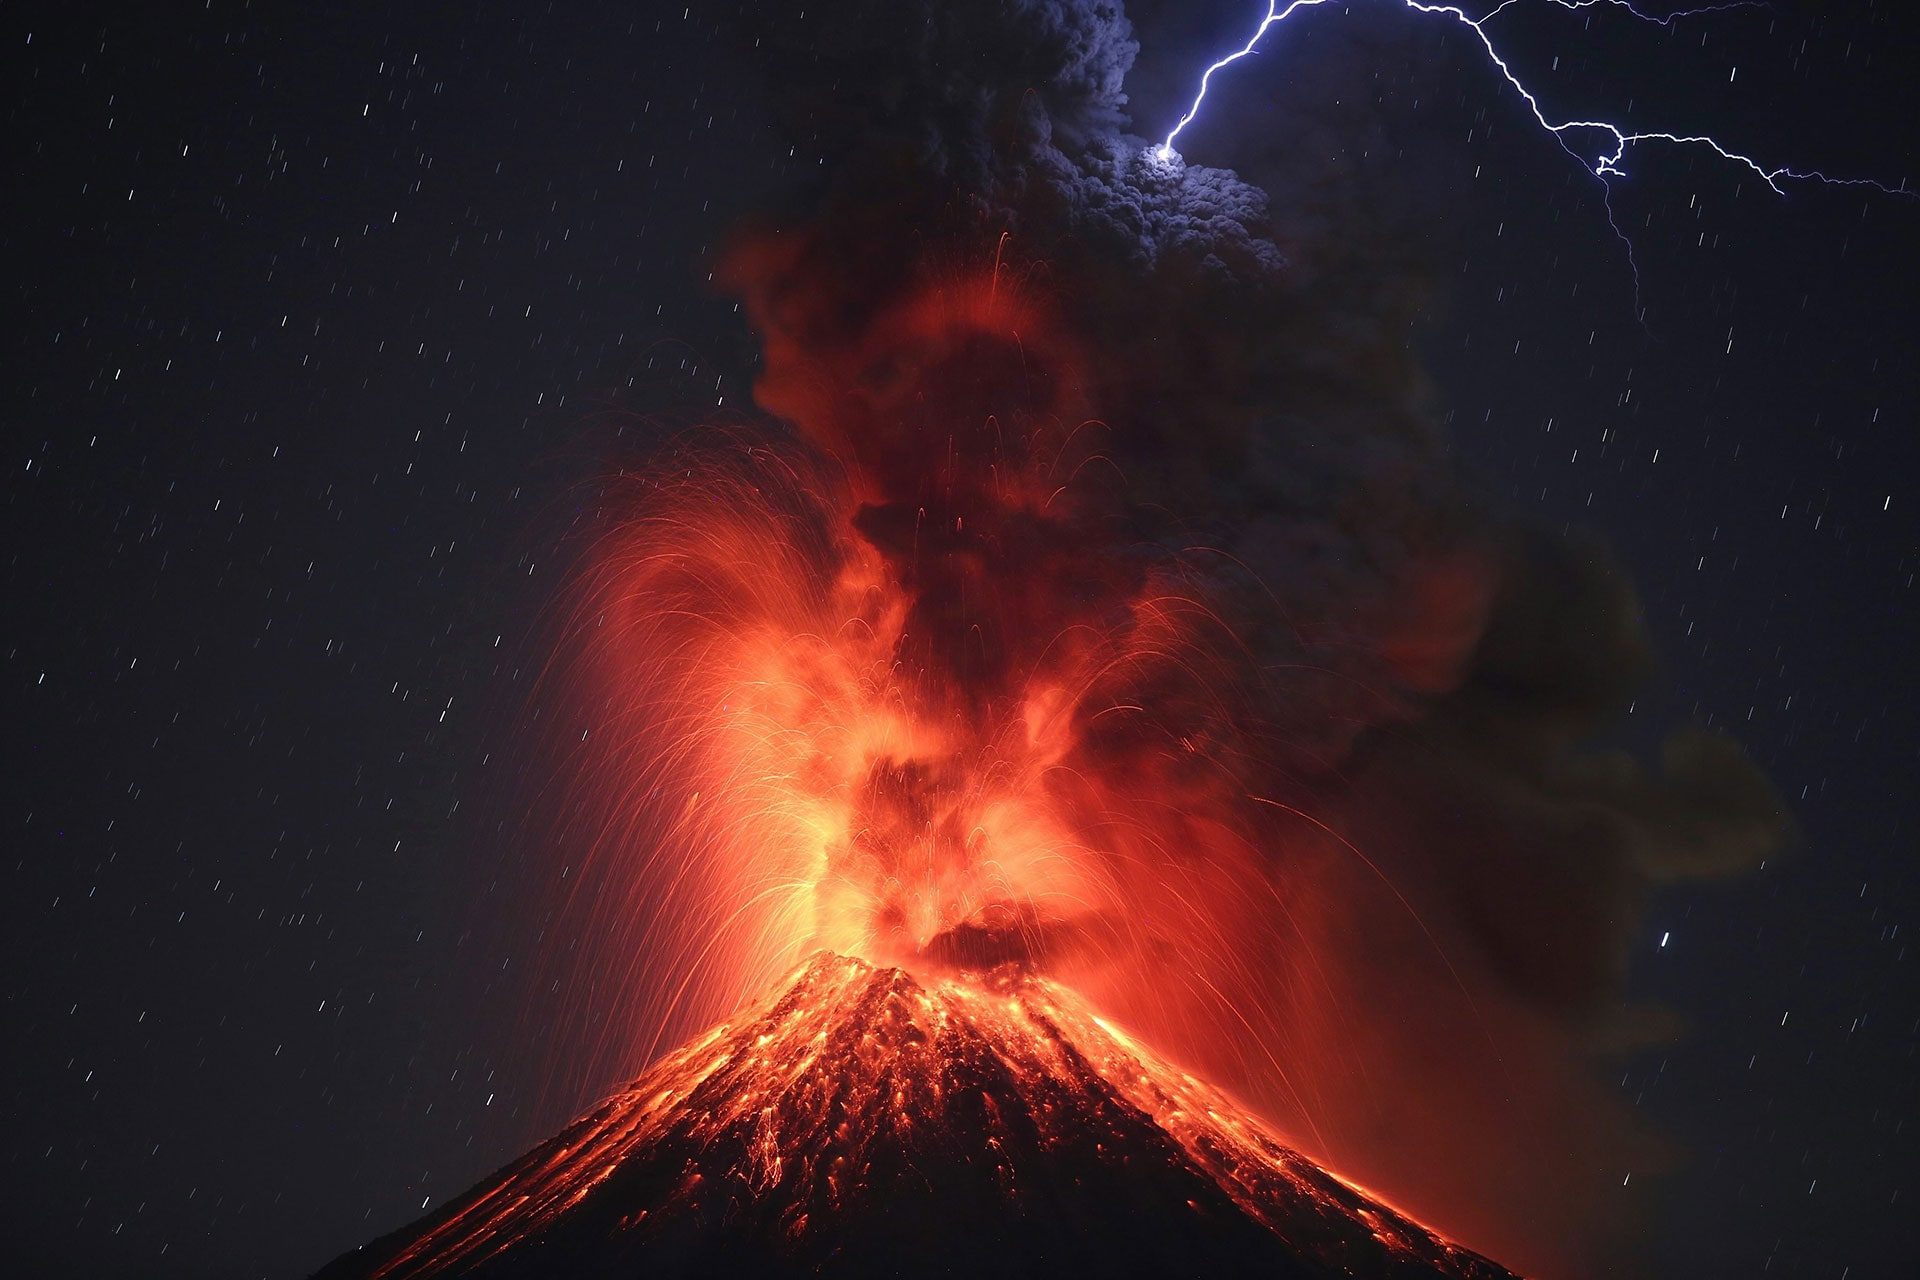 The Colima Volcano erupts on Jan. 26 in Mexico